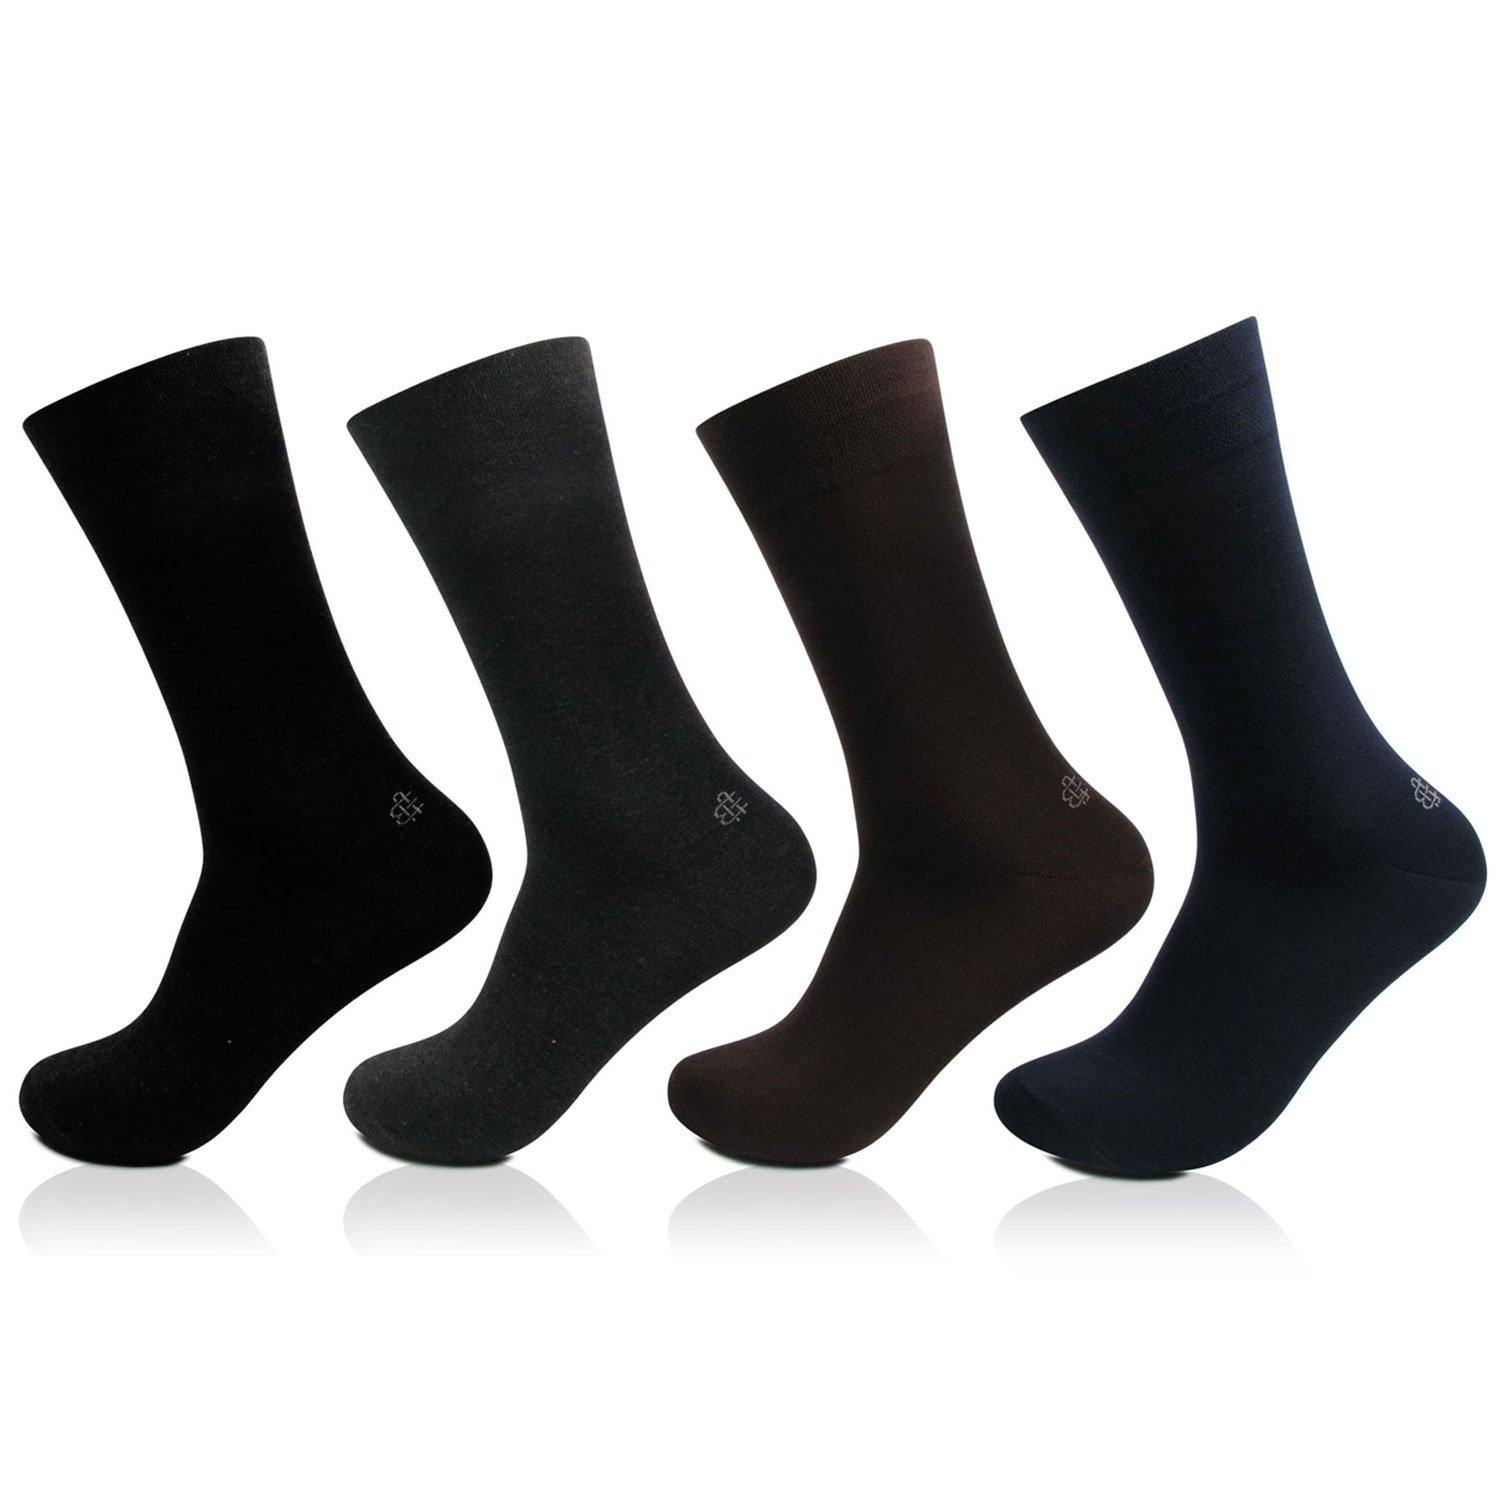 Men's Cotton Odour Free Multicolored Plain Socks- Pack of 4